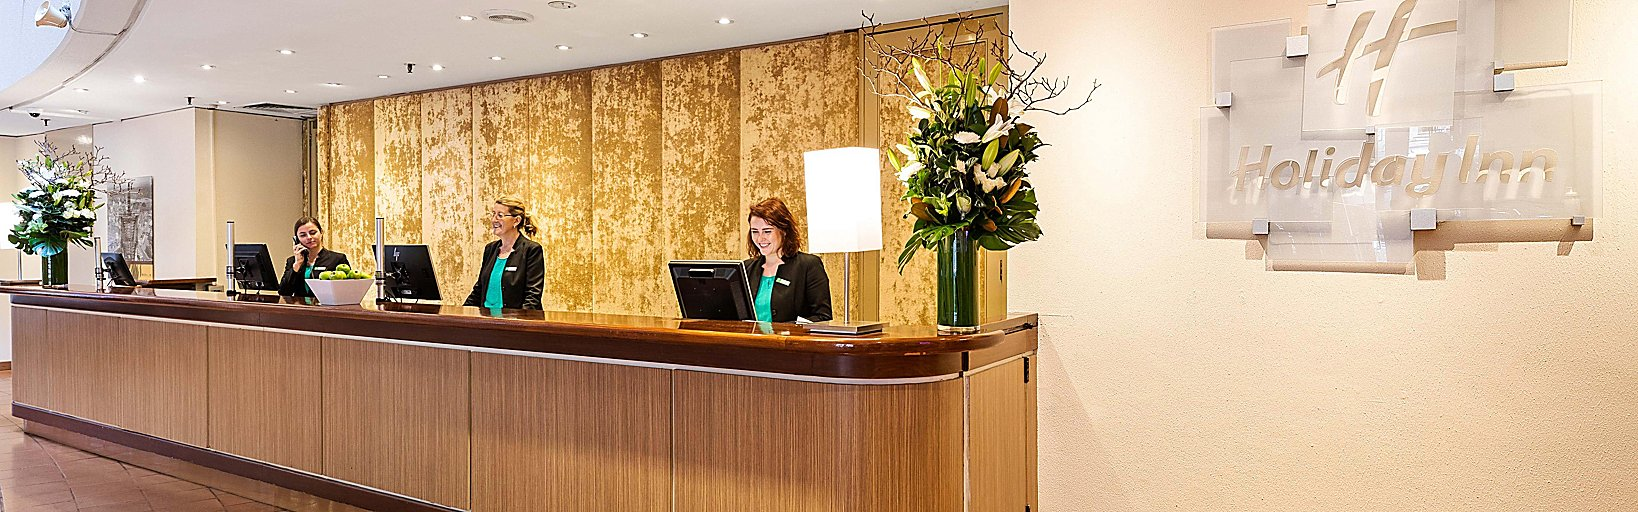 holiday-inn-sydney-6062713985-16x5.jpg